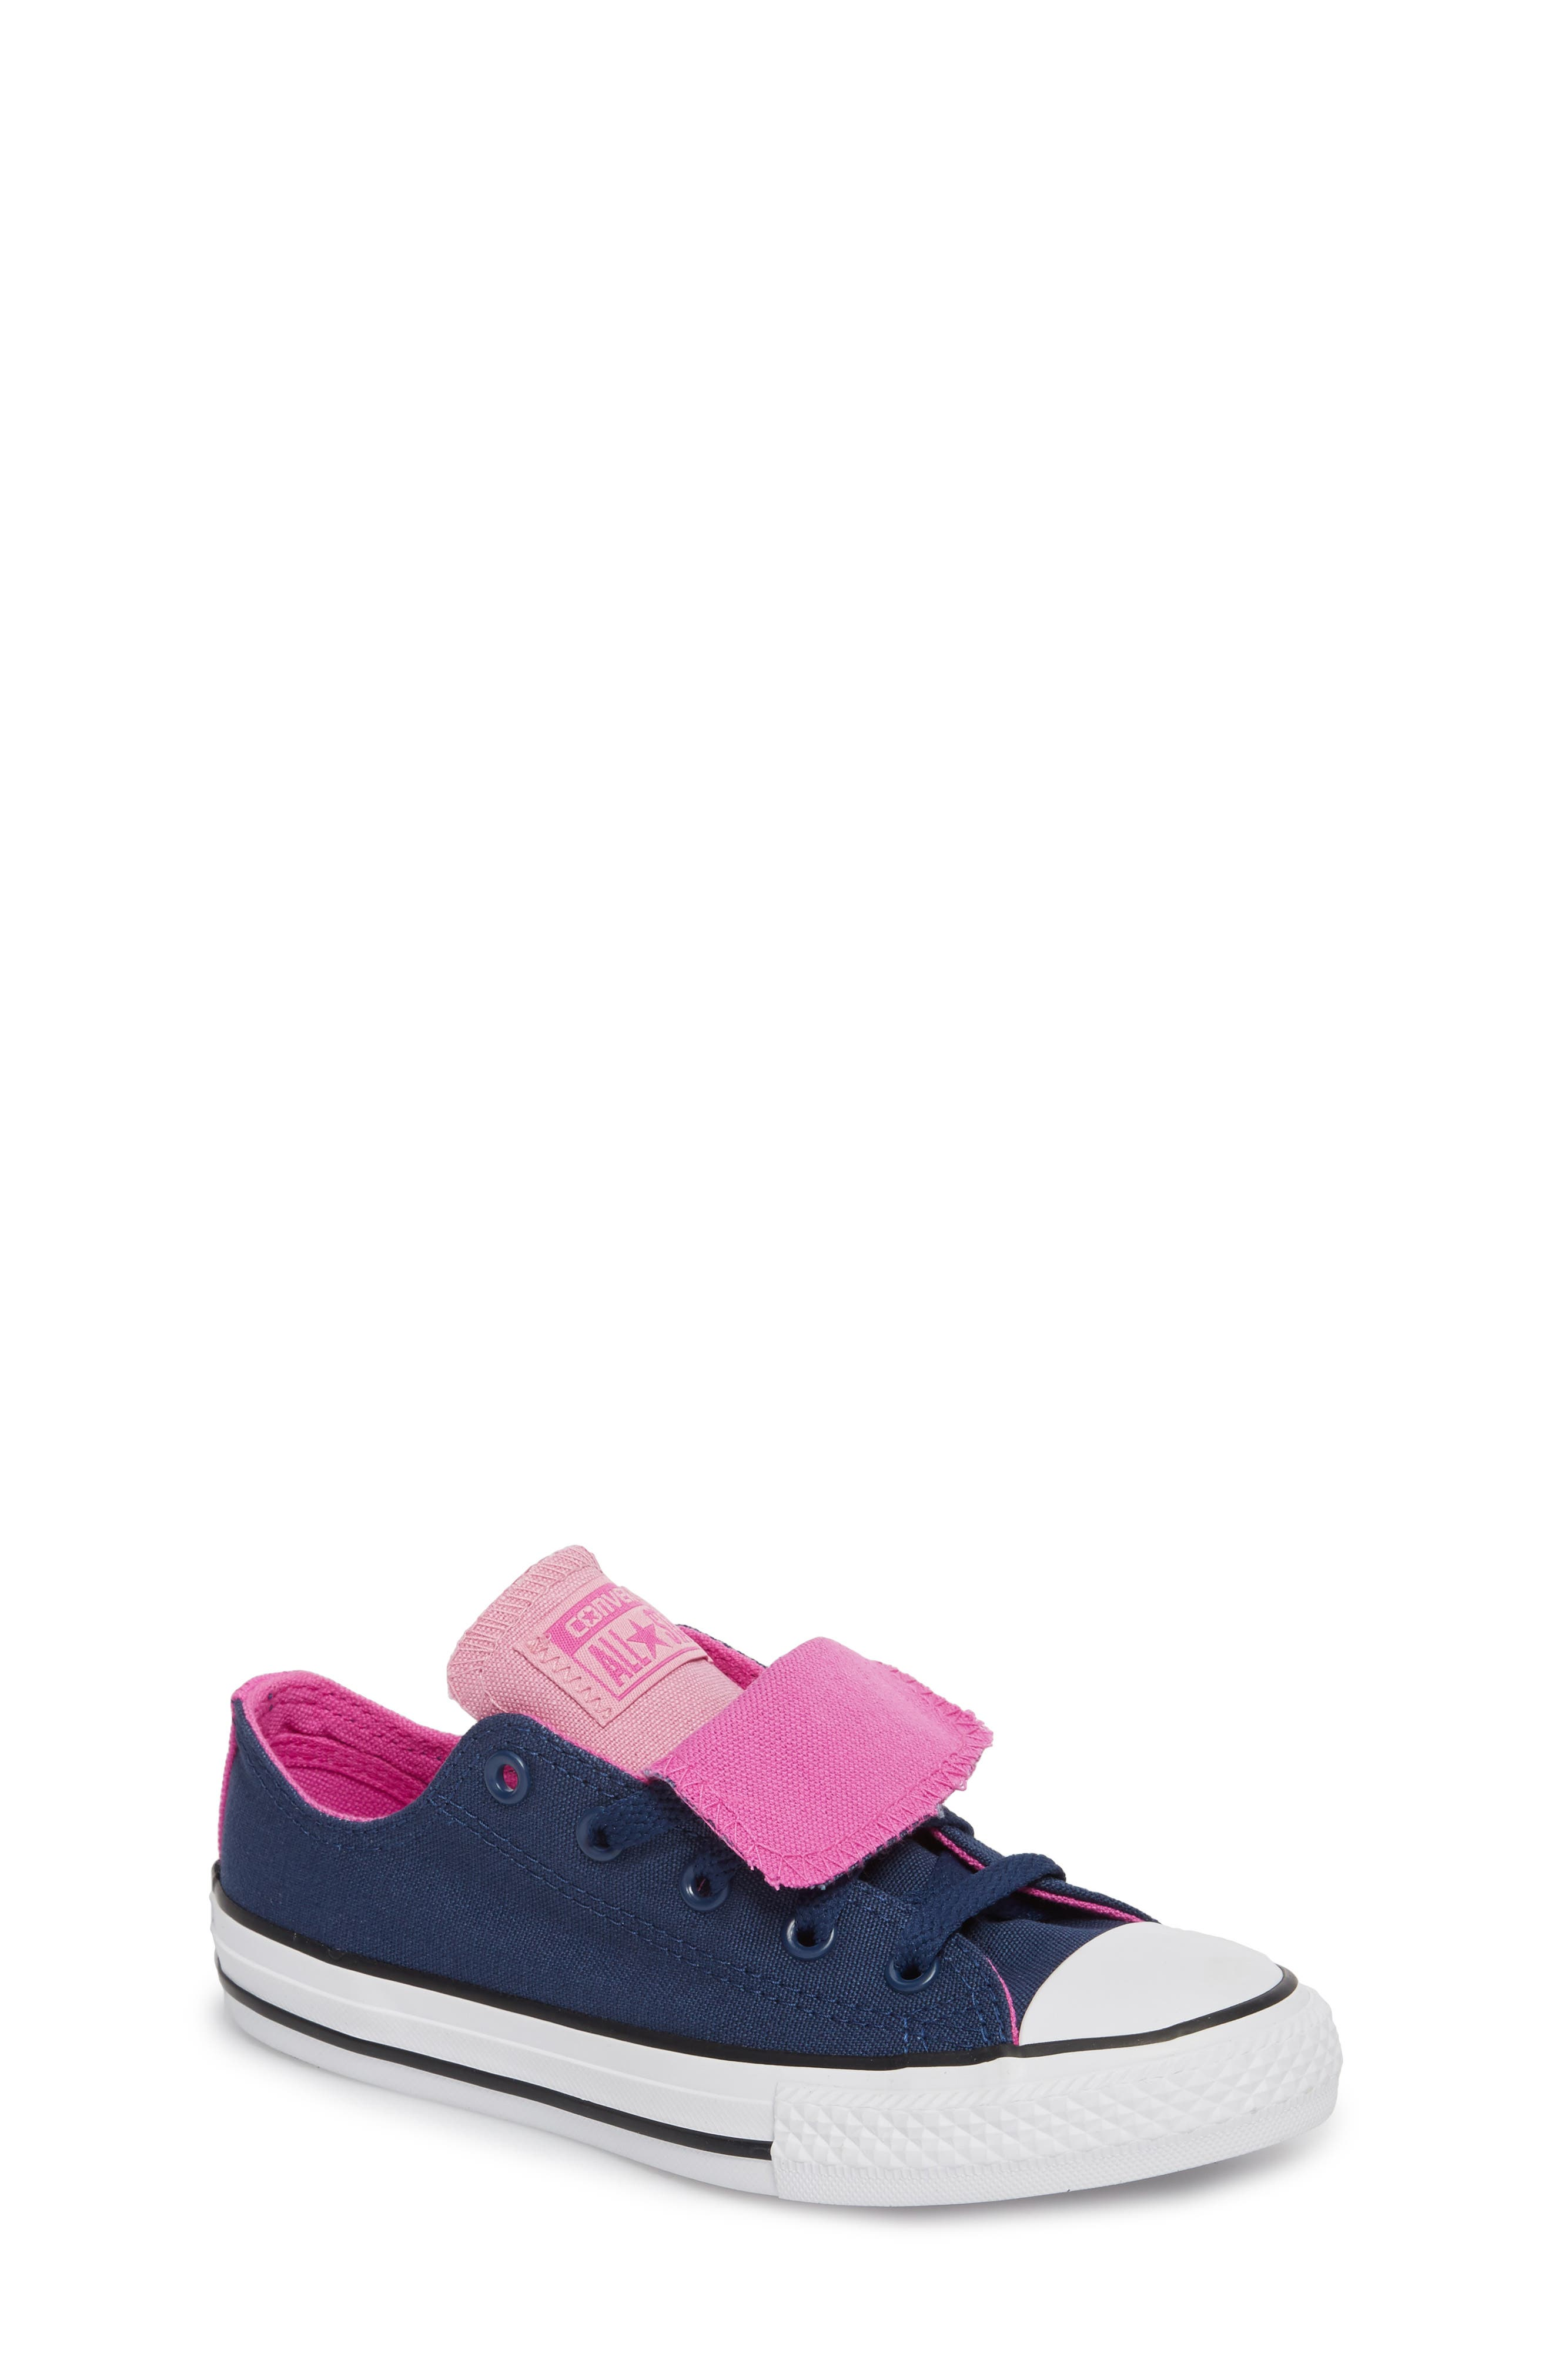 All Star<sup>®</sup> Double Tongue Sneaker,                             Main thumbnail 1, color,                             Navy